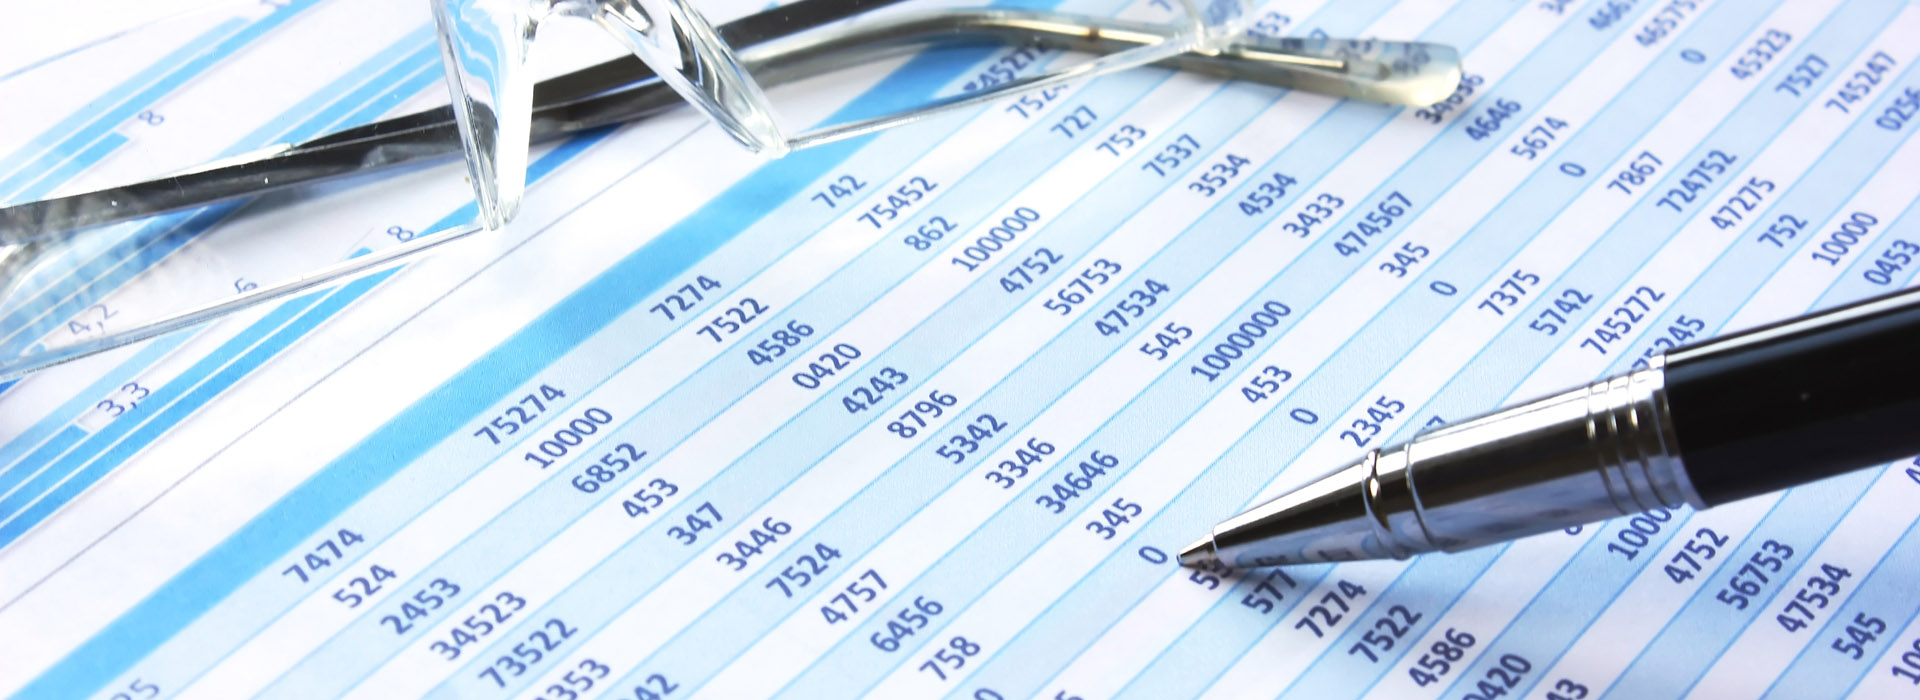 Accounting & Finance Courses